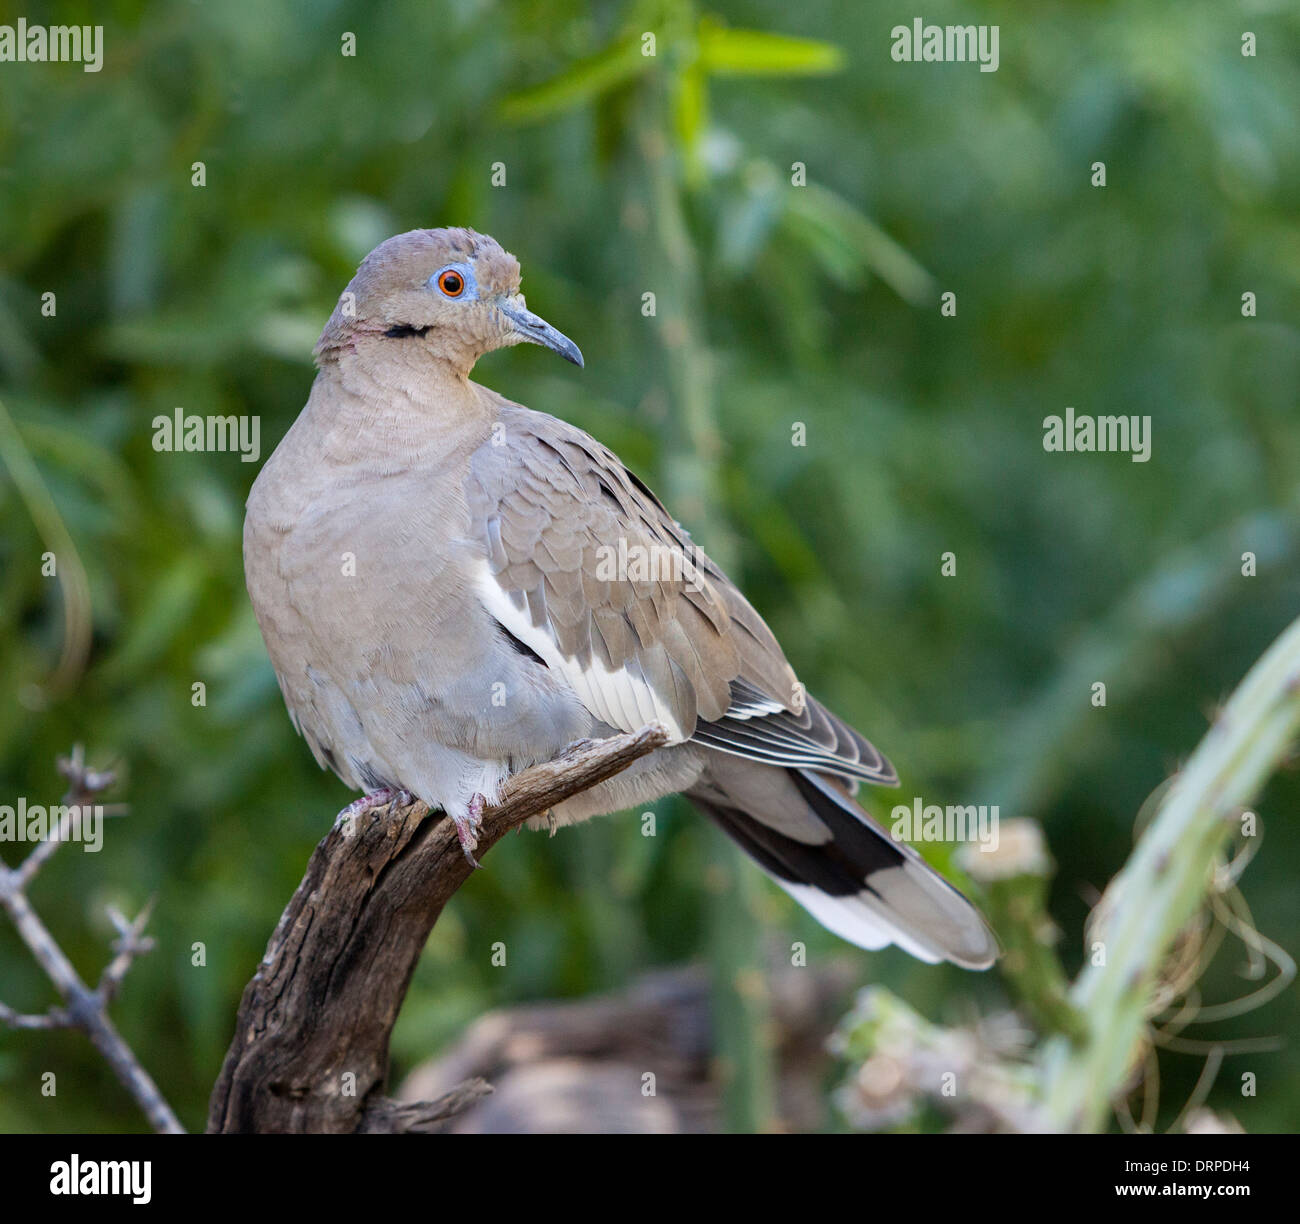 The White-winged Dove (Zenaida asiatica) is a dove whose native range extends from the south-western USA through Mexico. - Stock Image